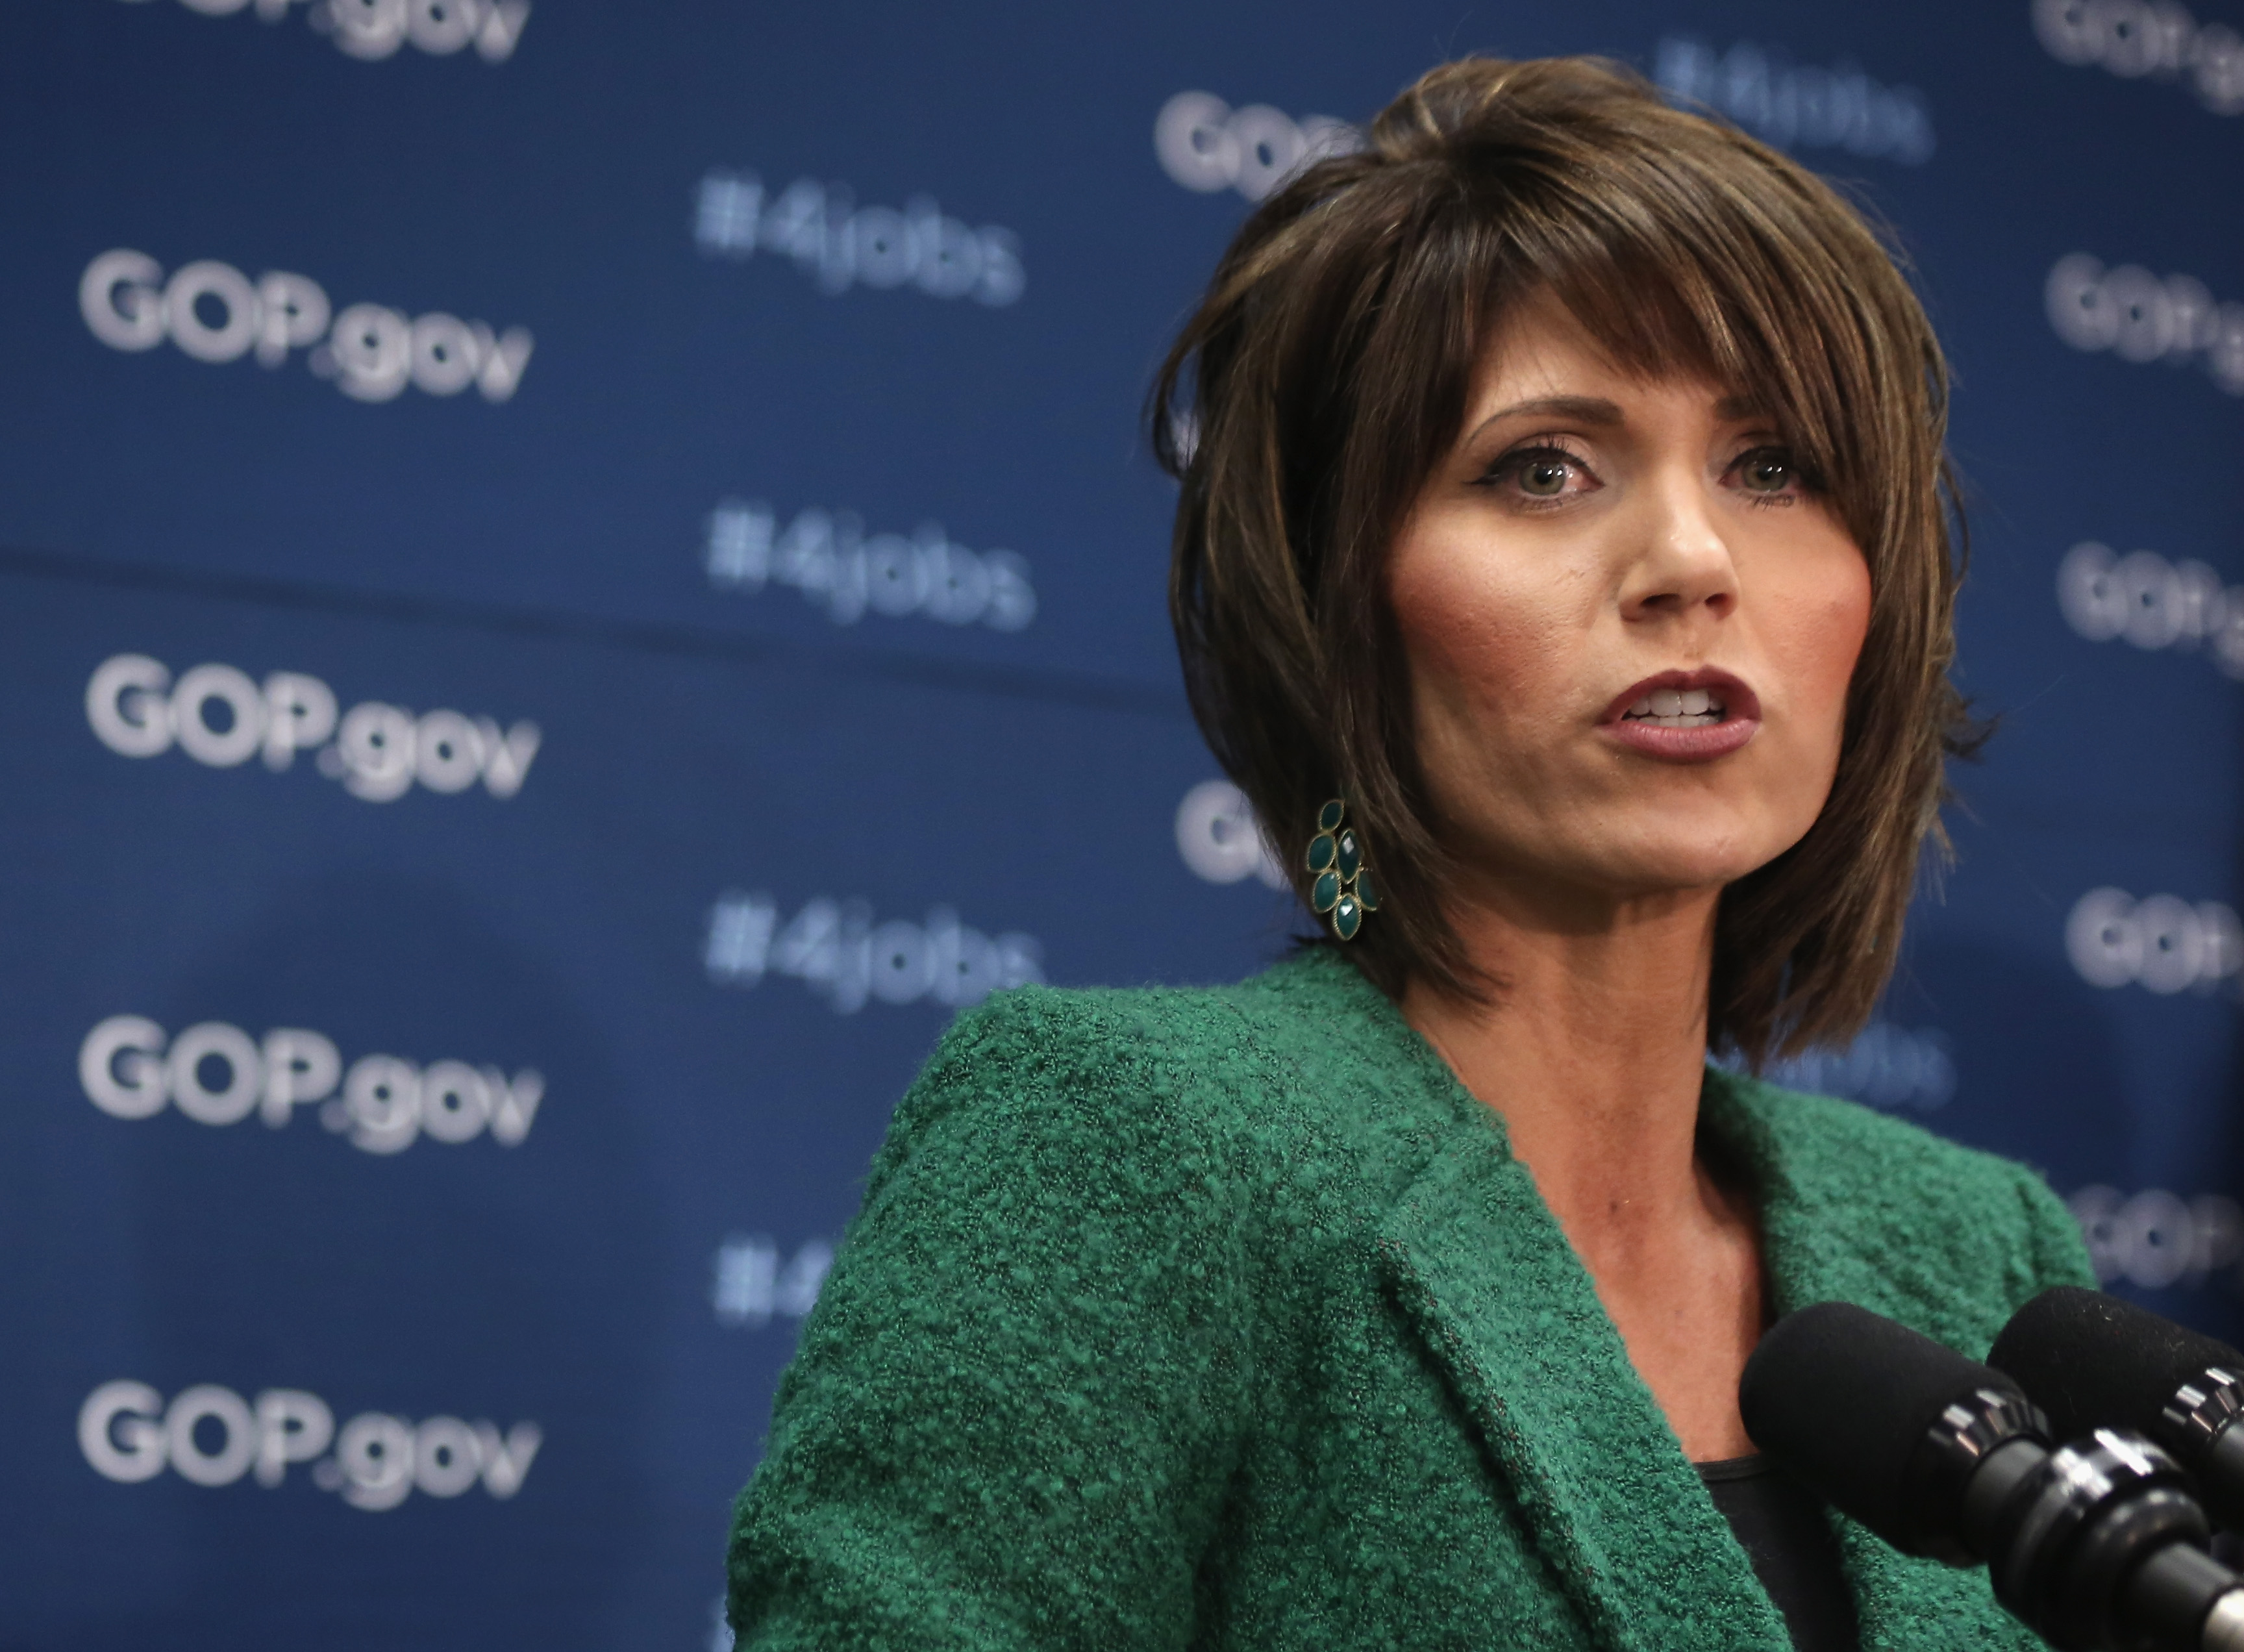 Republican Rep. Kristi Noem won the South Dakota primary and is now likely to become the state's first female governor.